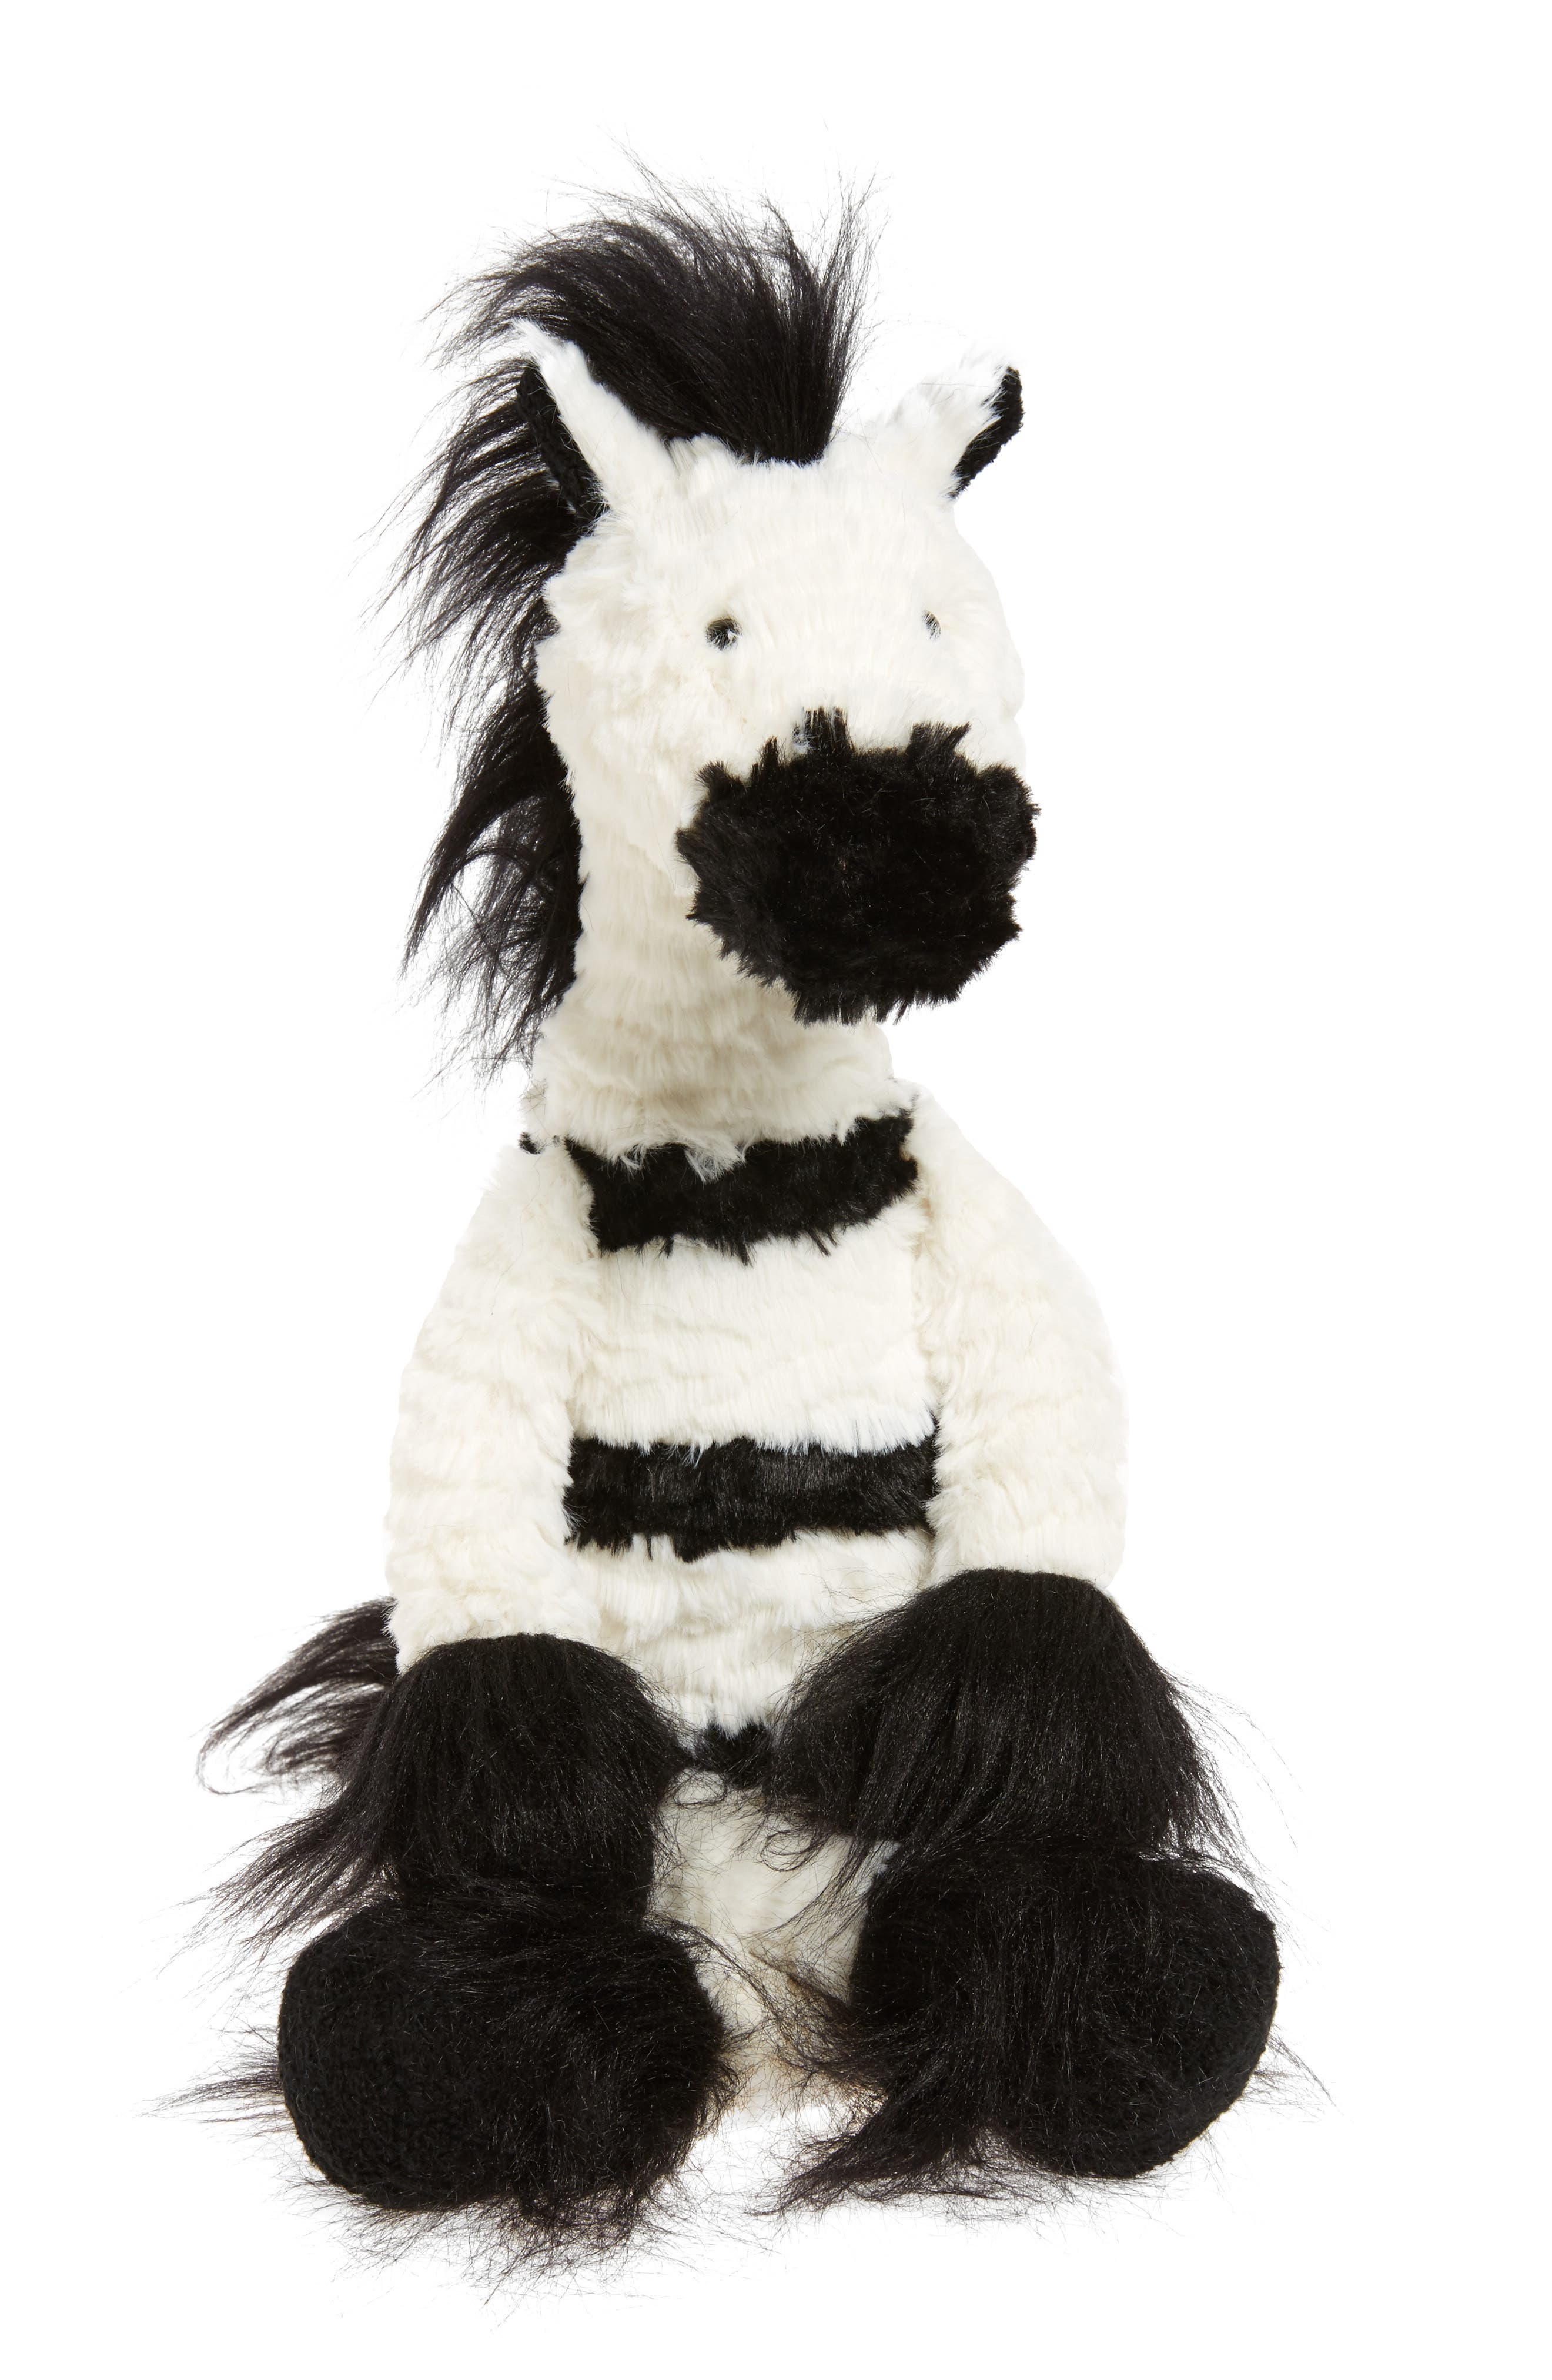 Jellycat Dainty Zebra Stuffed Animal